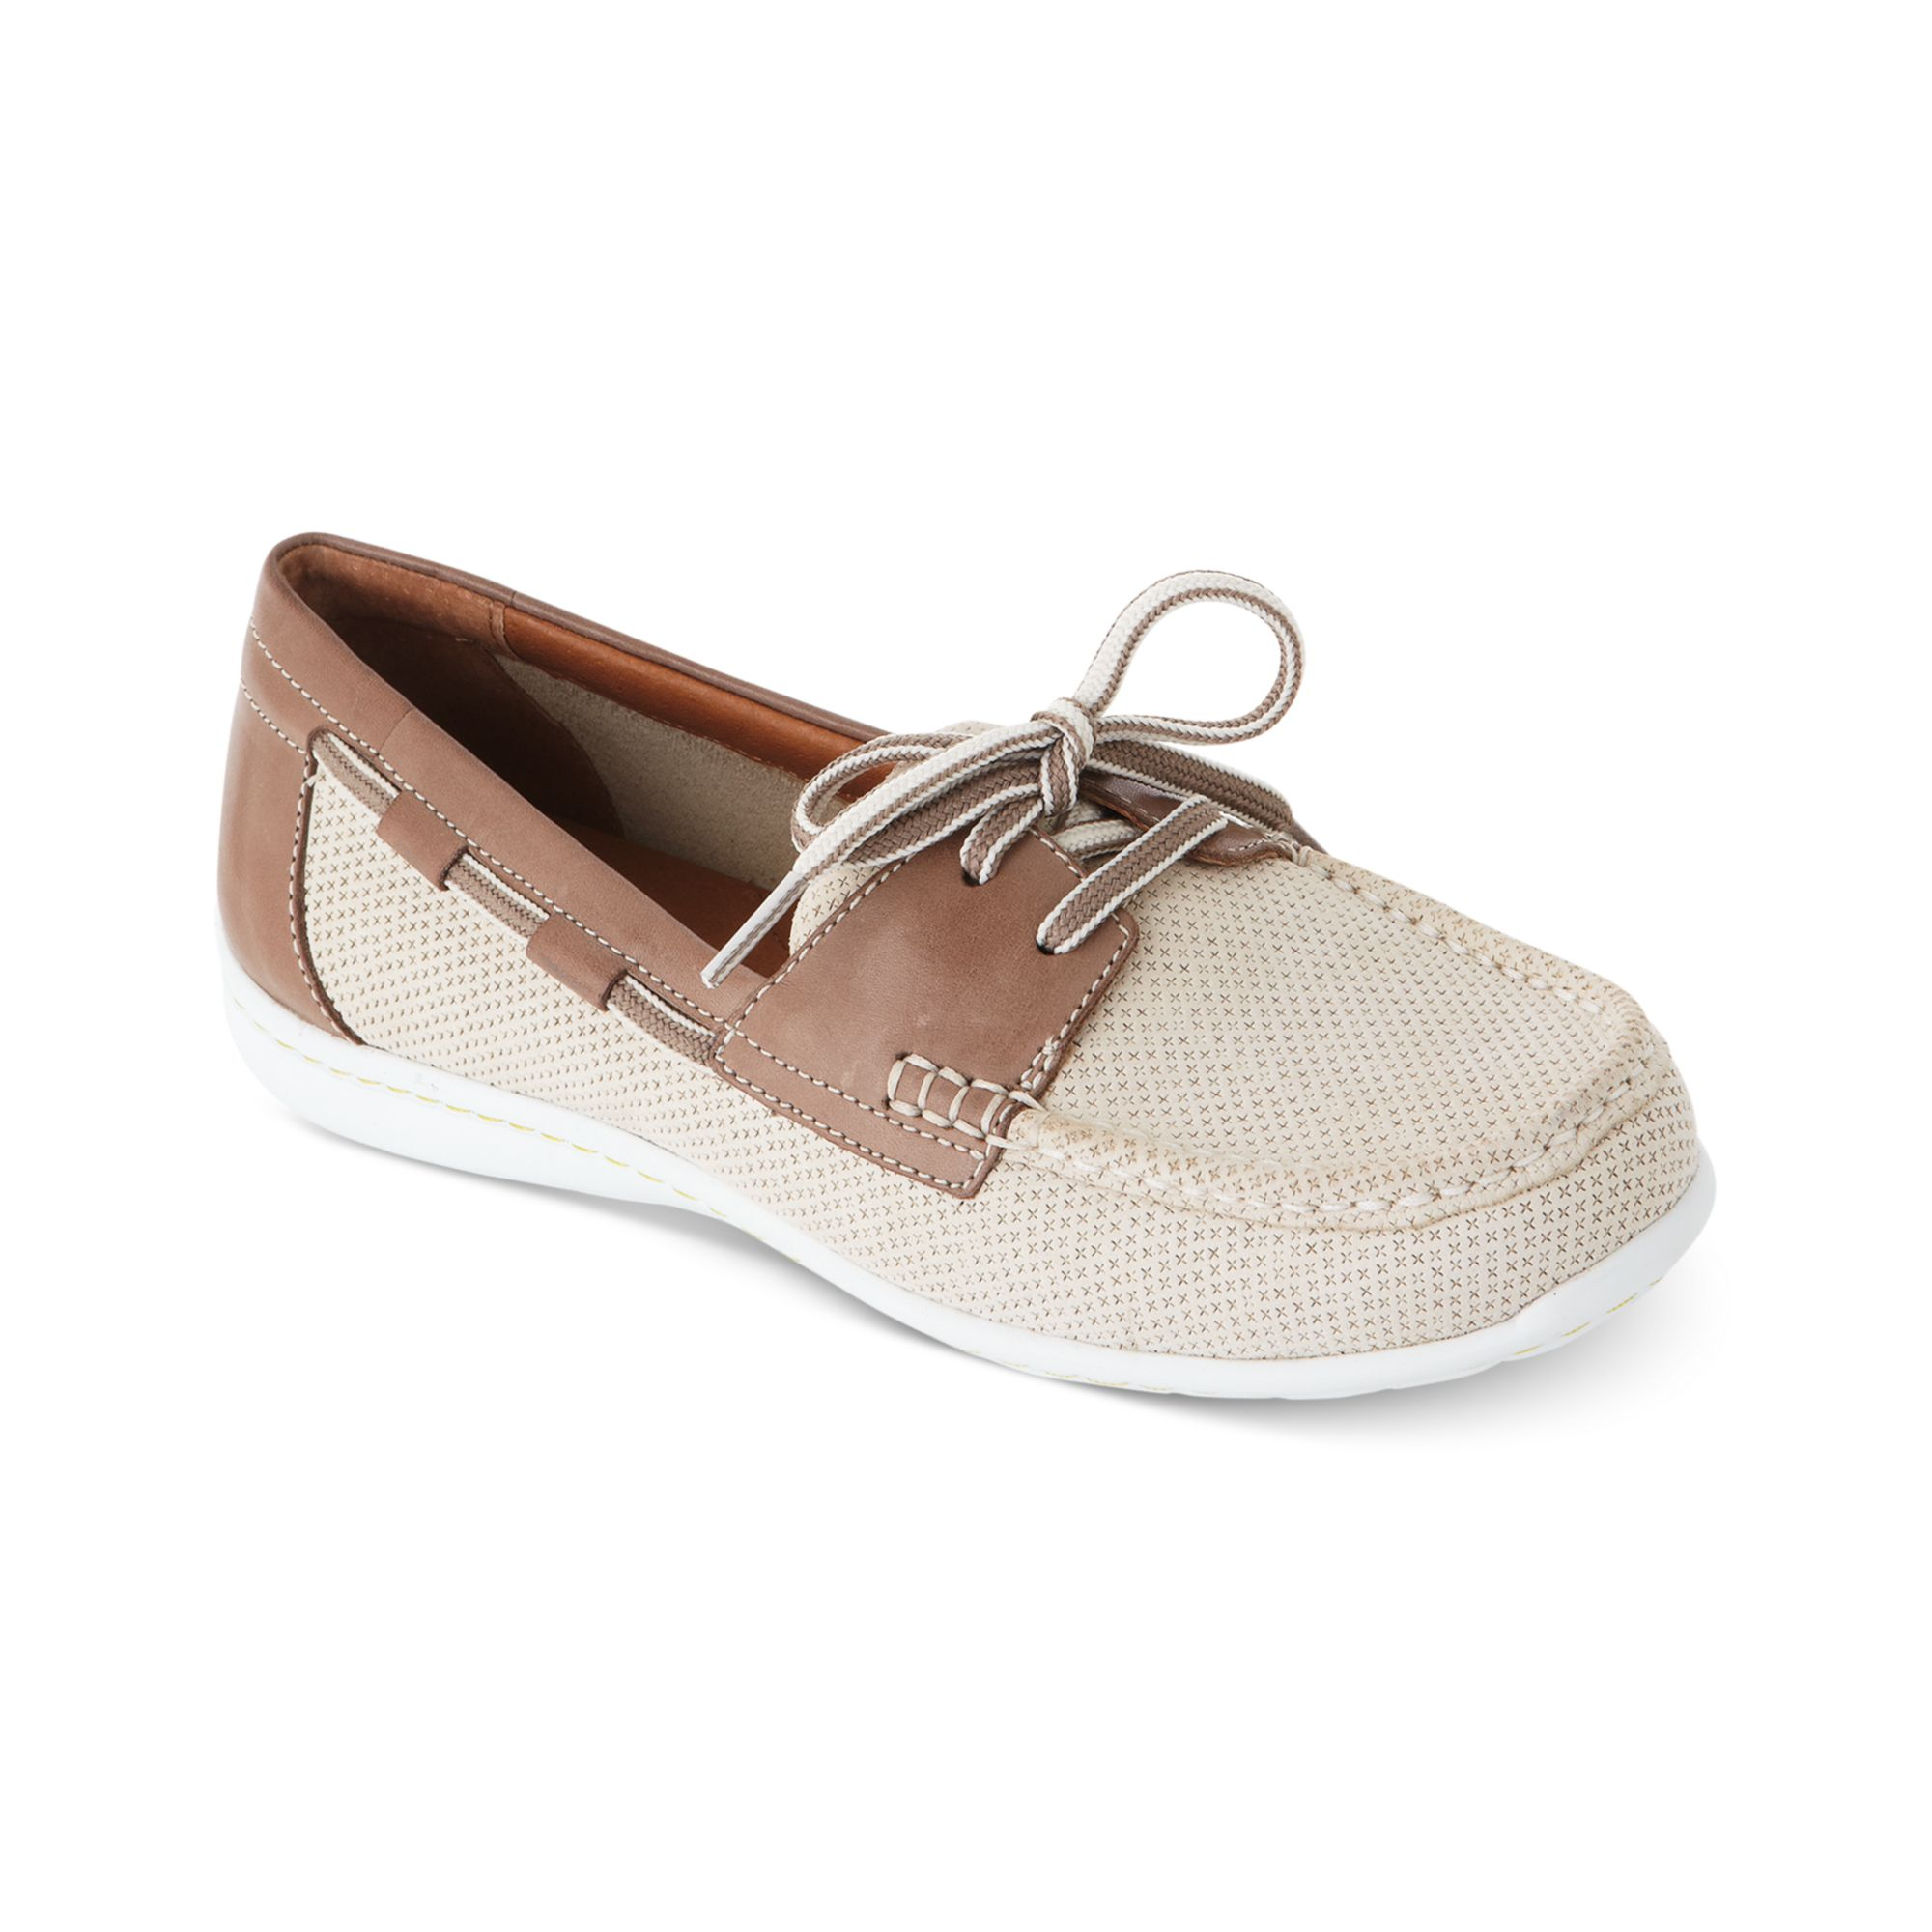 Clarks Womens Clifforse Sail Boat Shoes in Brown (OFF WHTIE